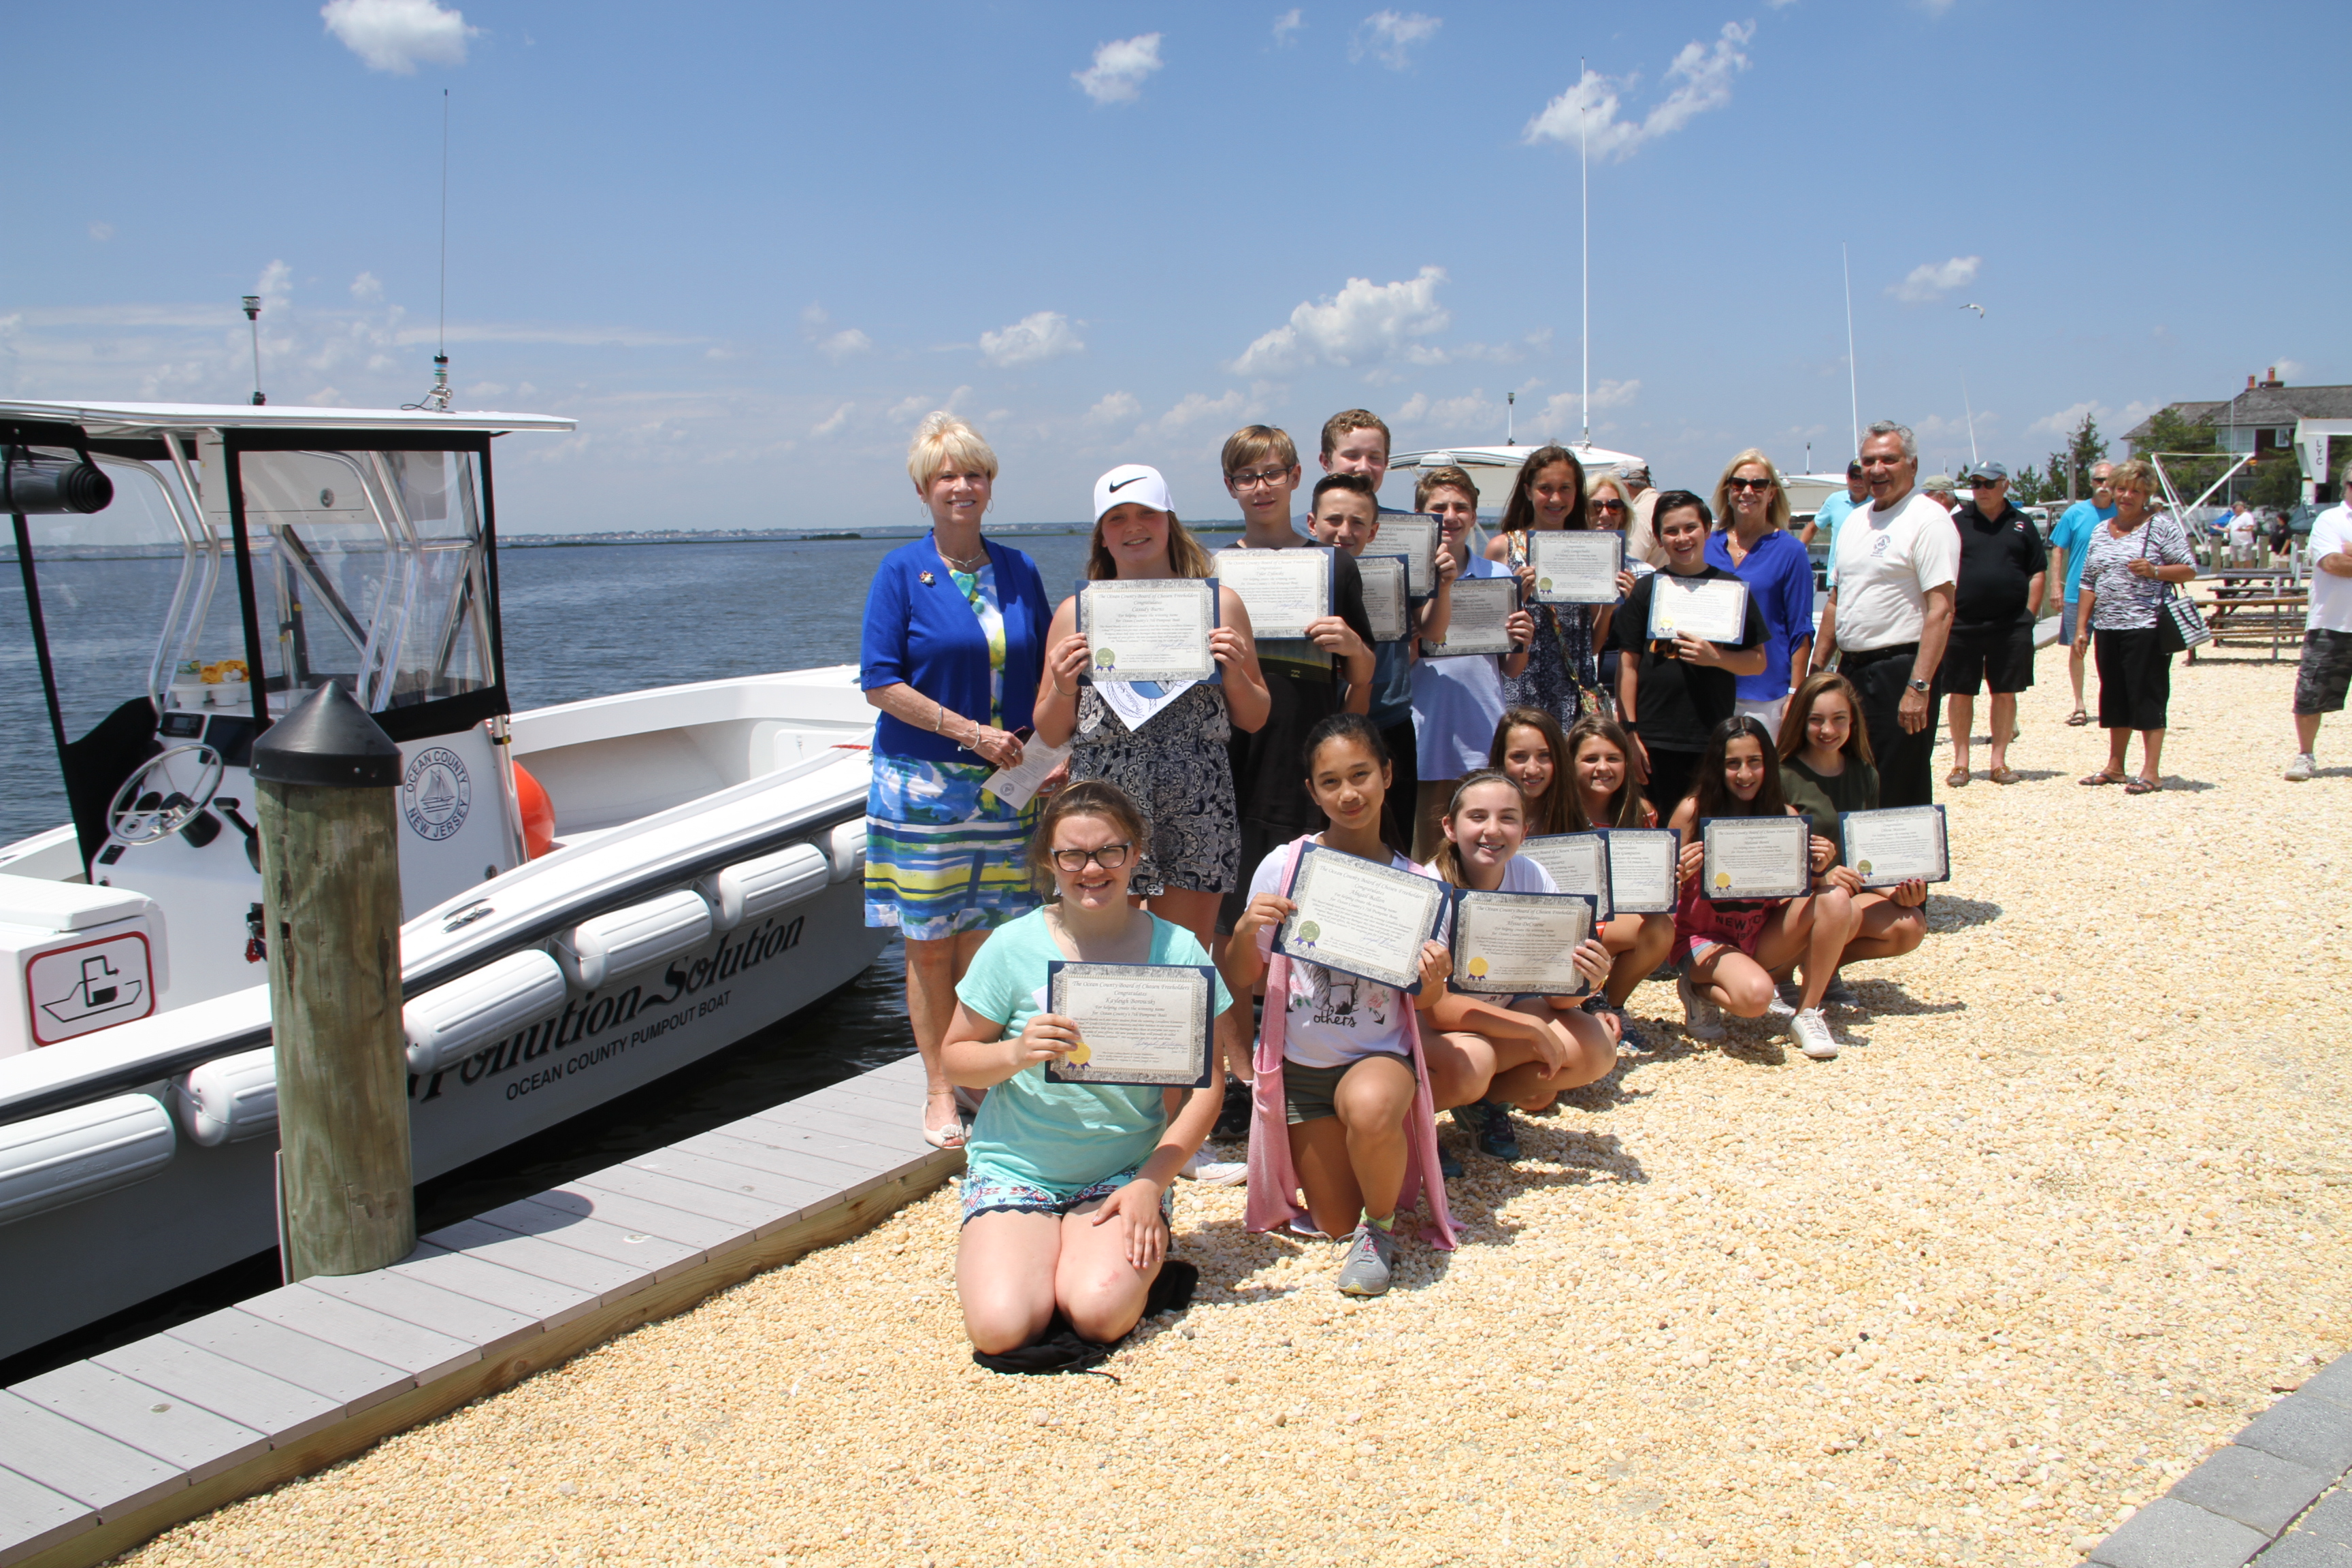 Seventh graders at Lavallette Elementary School, next to the pumpout boat they named. (Photo: Ocean County)